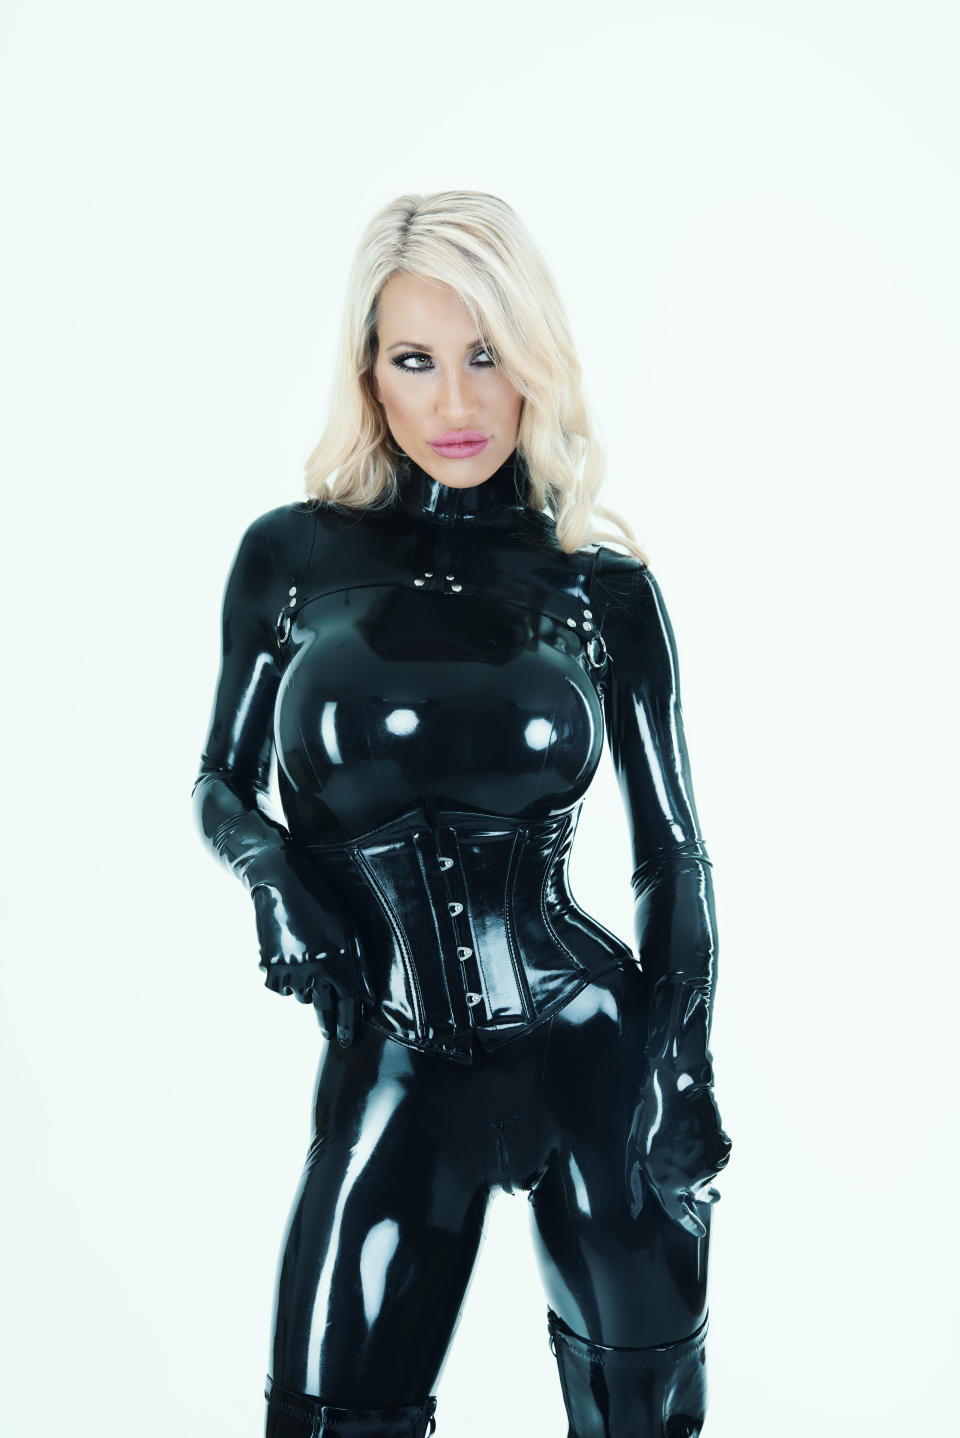 Sarah is better known by her dominatrix name, Calea Toxic. Photo: MediaDrumWorld/Australscope (supplied).